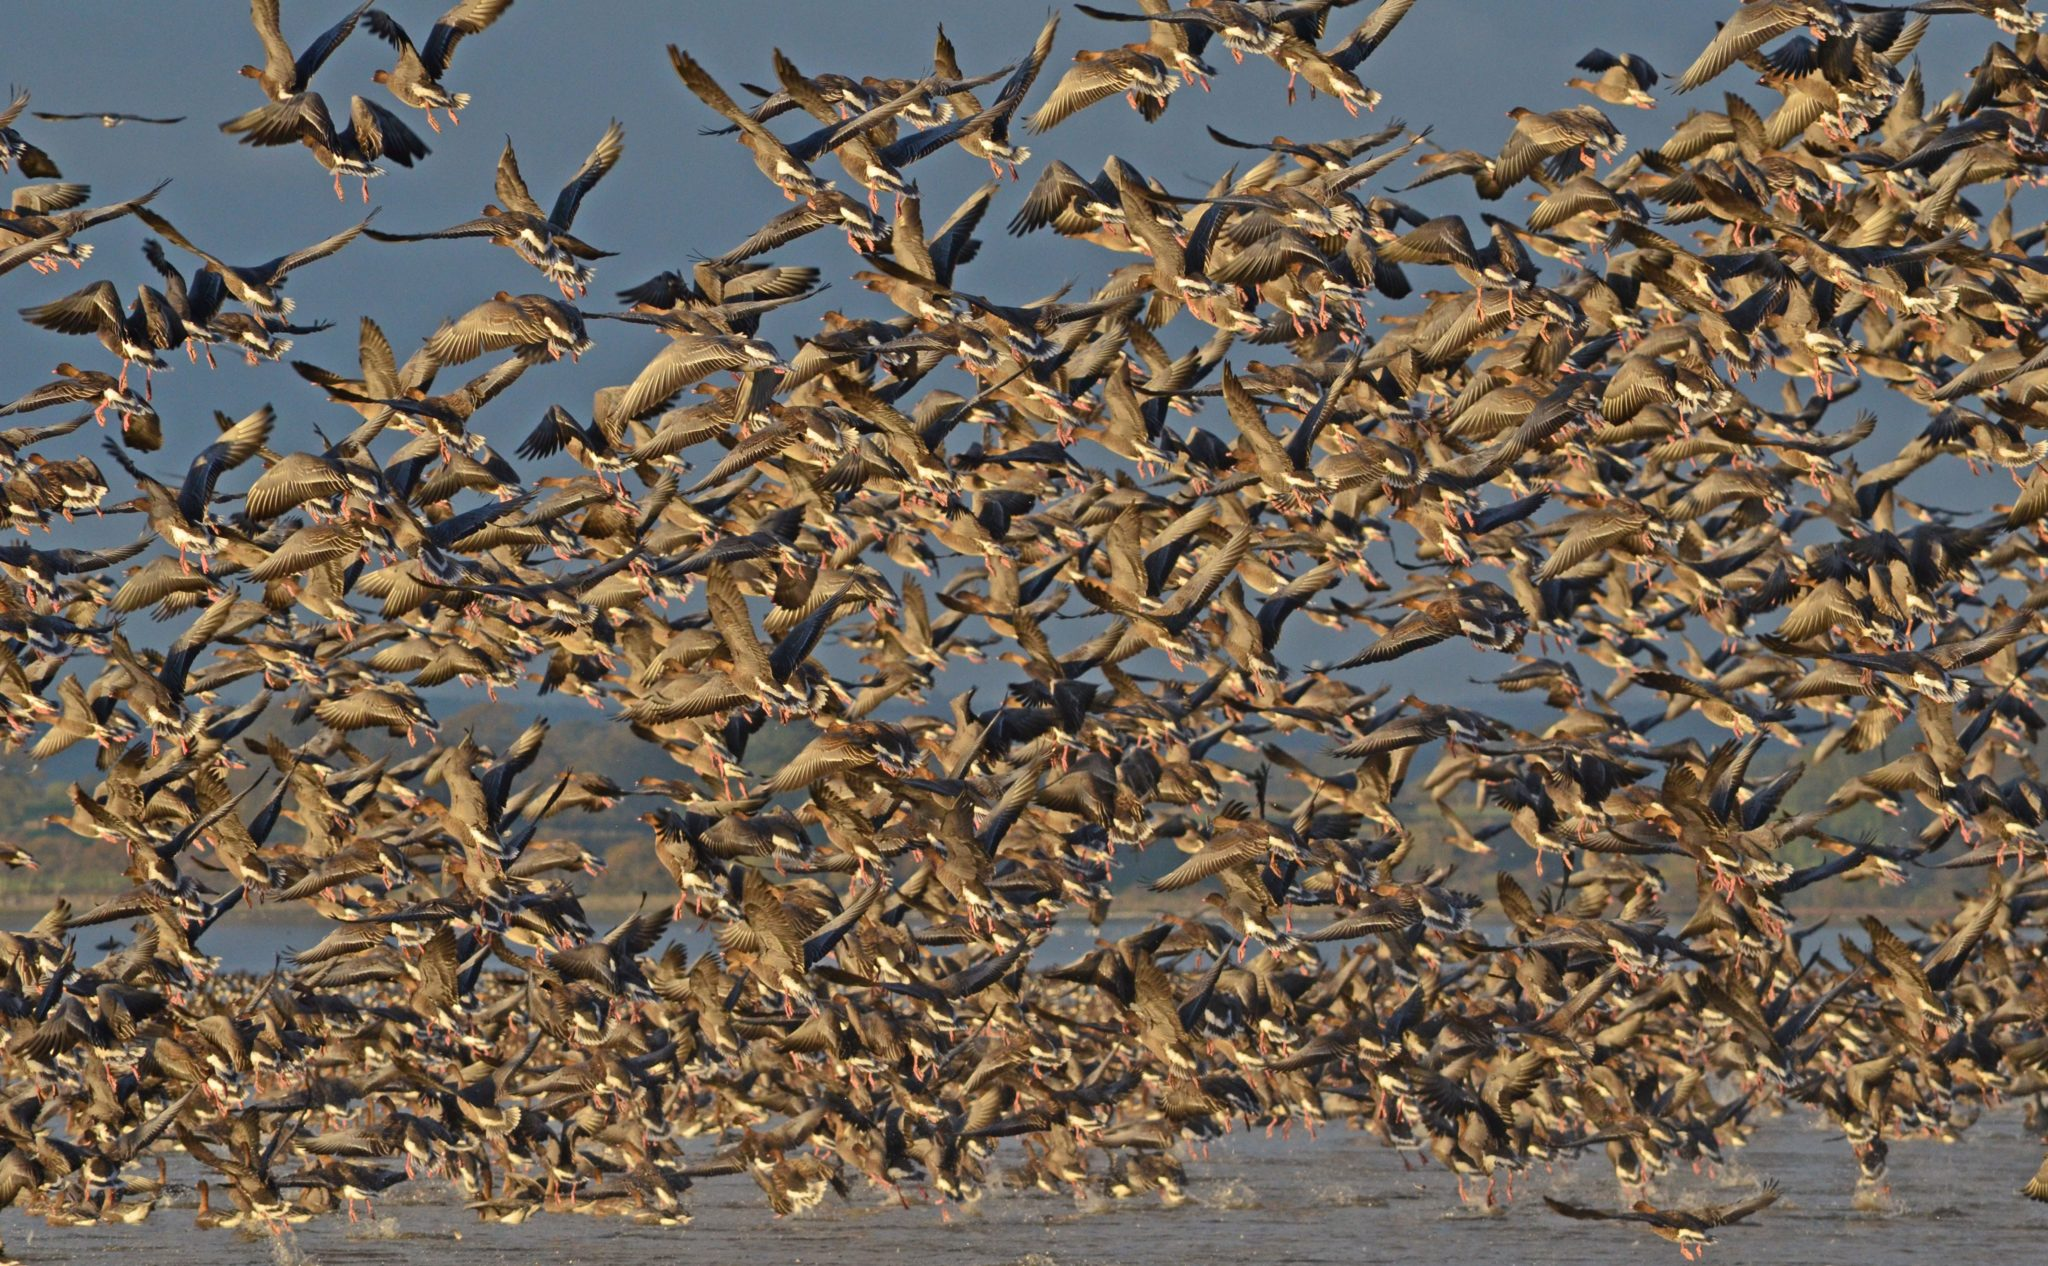 Pink-footed geese, Montrose Basin © Harry Bickerstaff